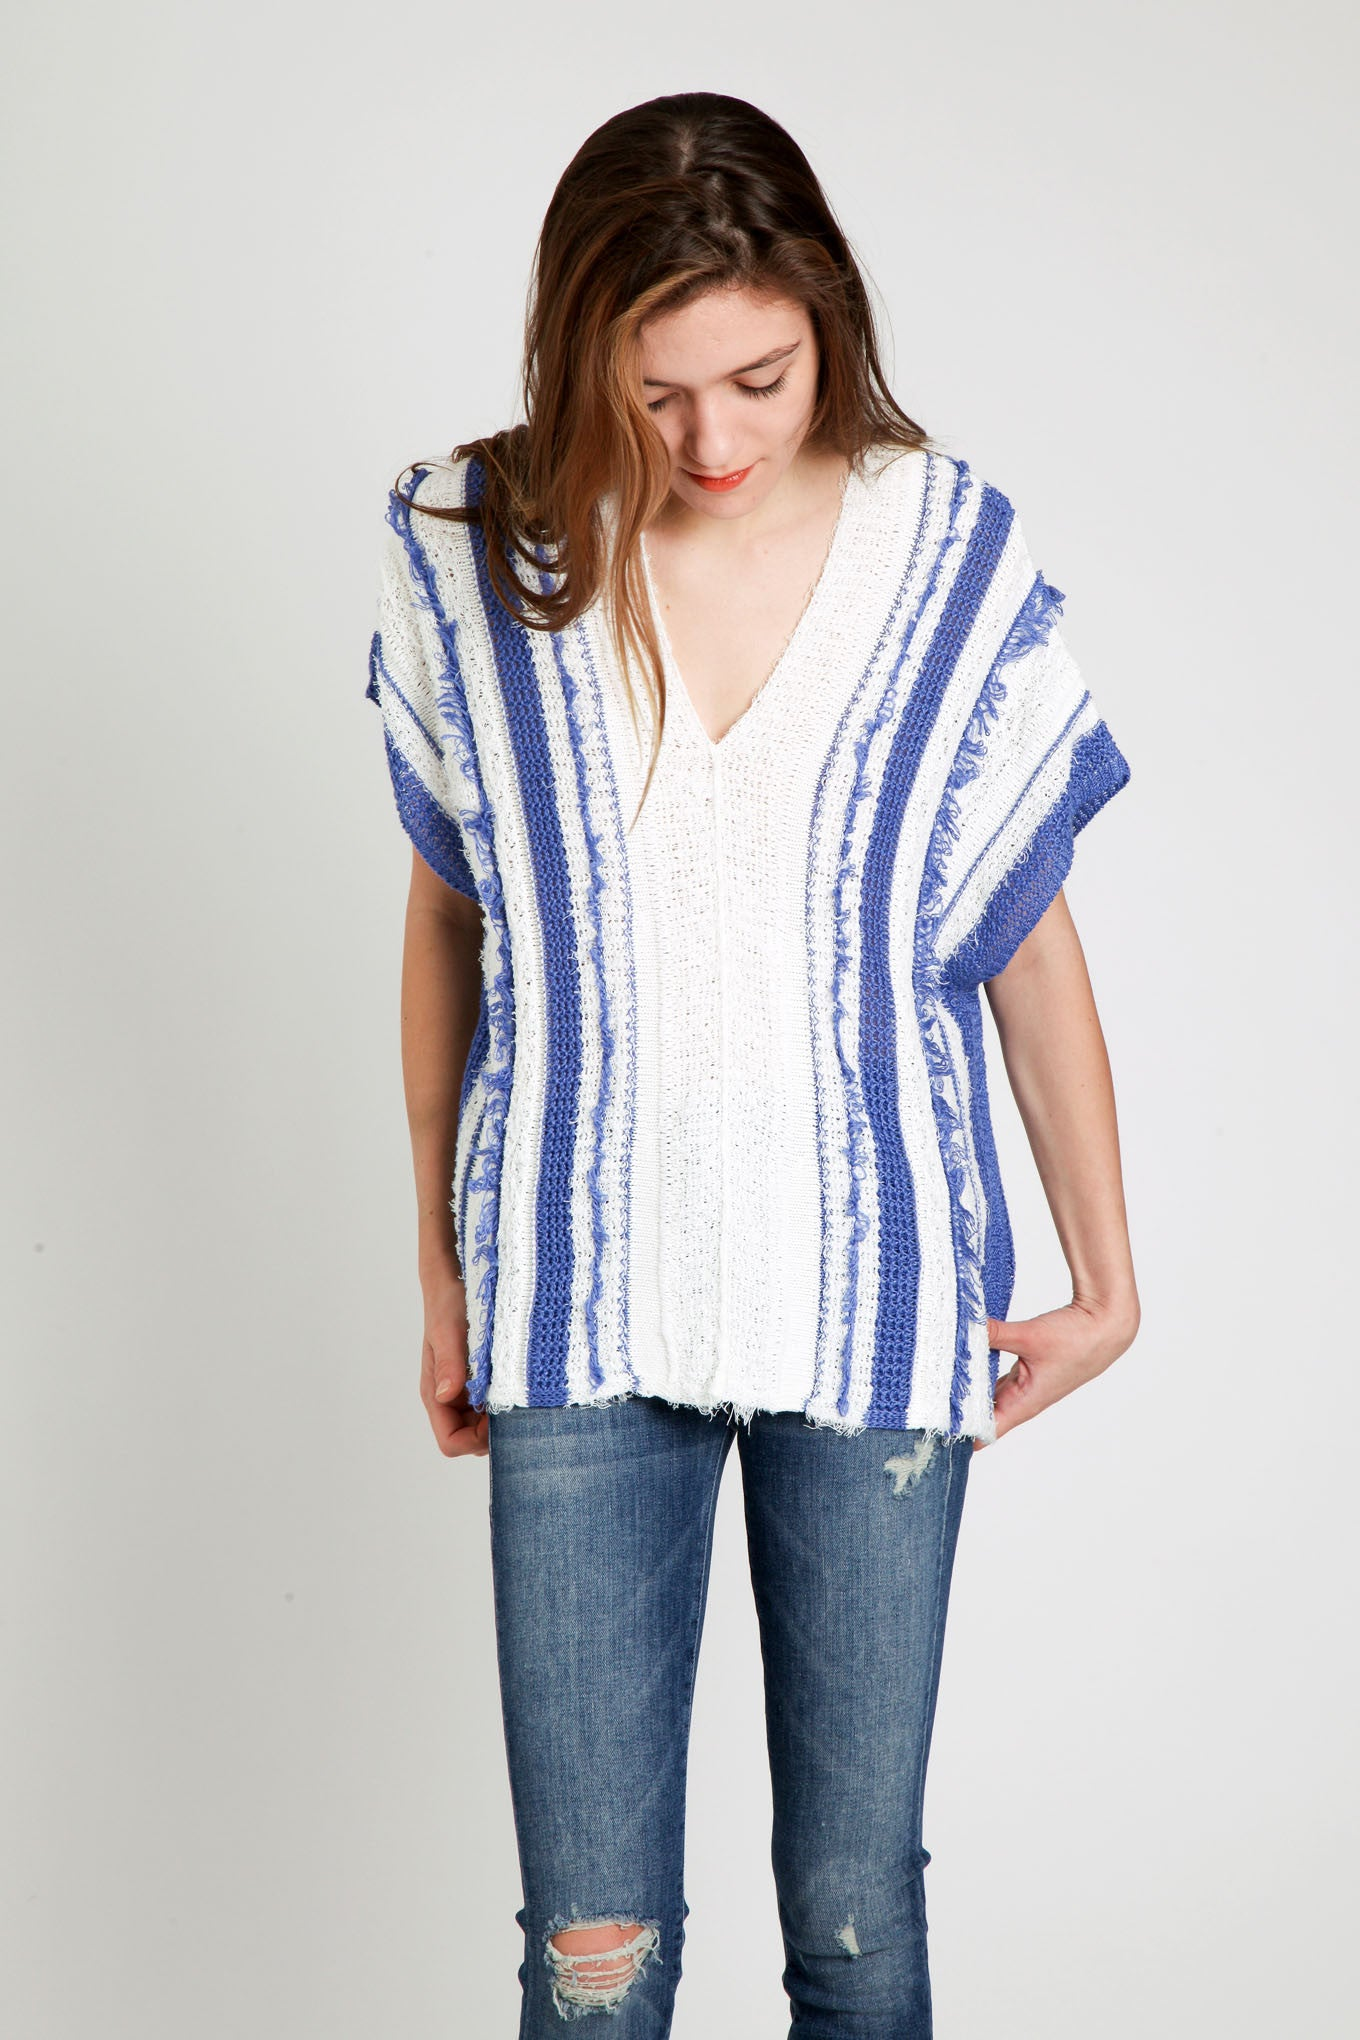 Sita Murt / Blue & White Sweater Poncho